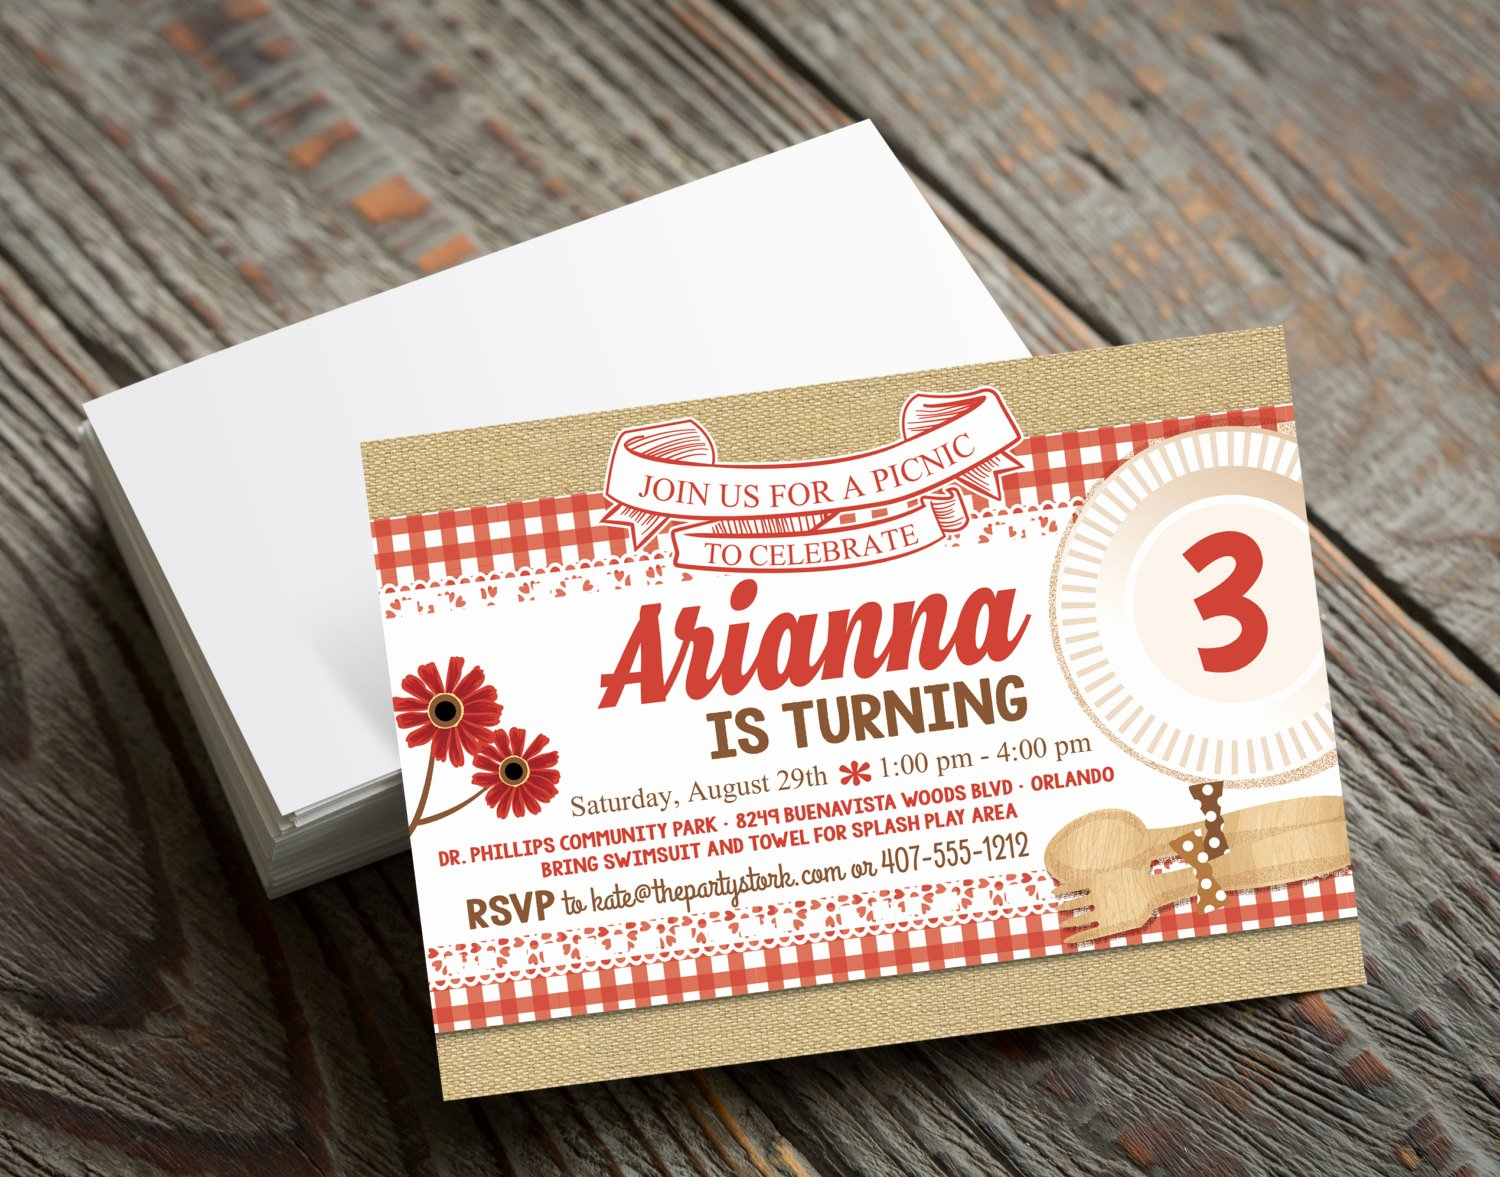 Picnic Birthday Party Invitations Fresh Picnic Invitation Picnic Party Picnic Party Invitation